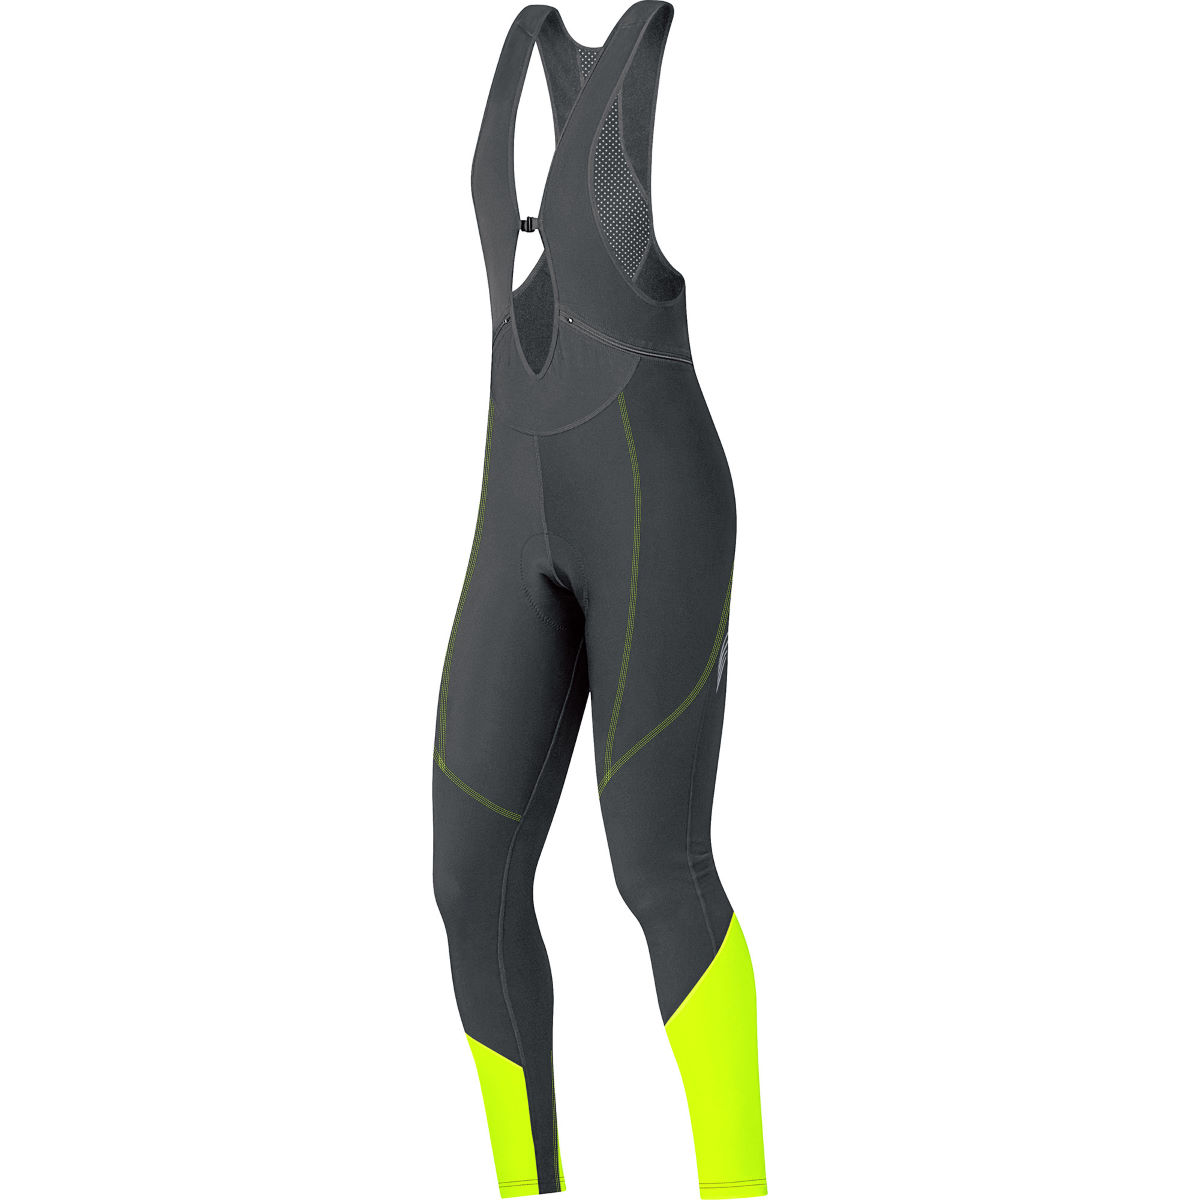 Cuissard long à bretelles Femme Gore Bike Wear Element - S Black/Neon Yellow Cuissards longs de vélo